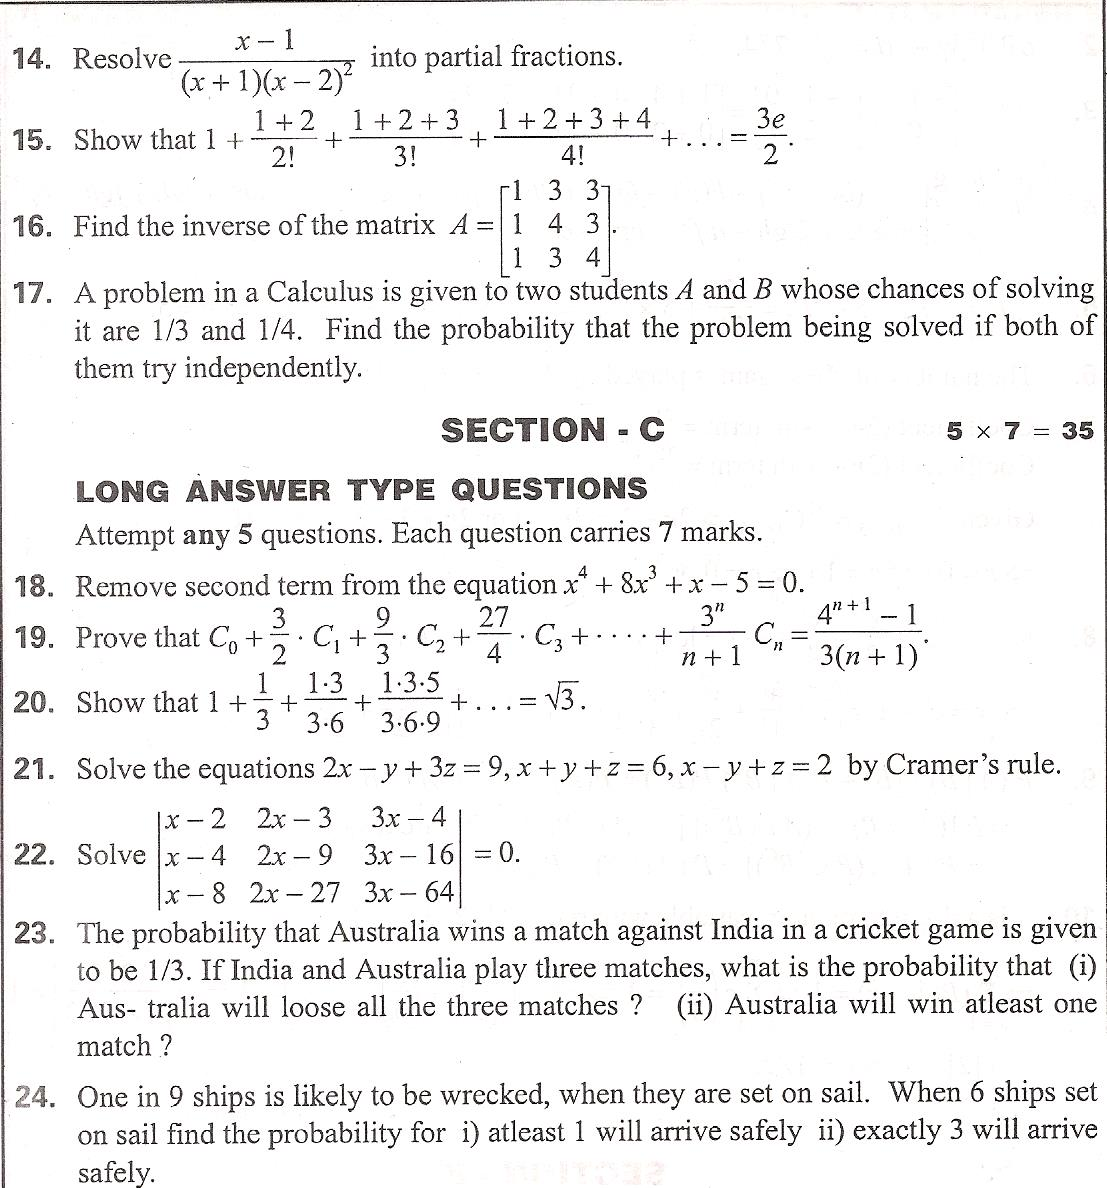 Andhra pradesh state mathematics ii a state syllabus intermediate return to question paper search malvernweather Images